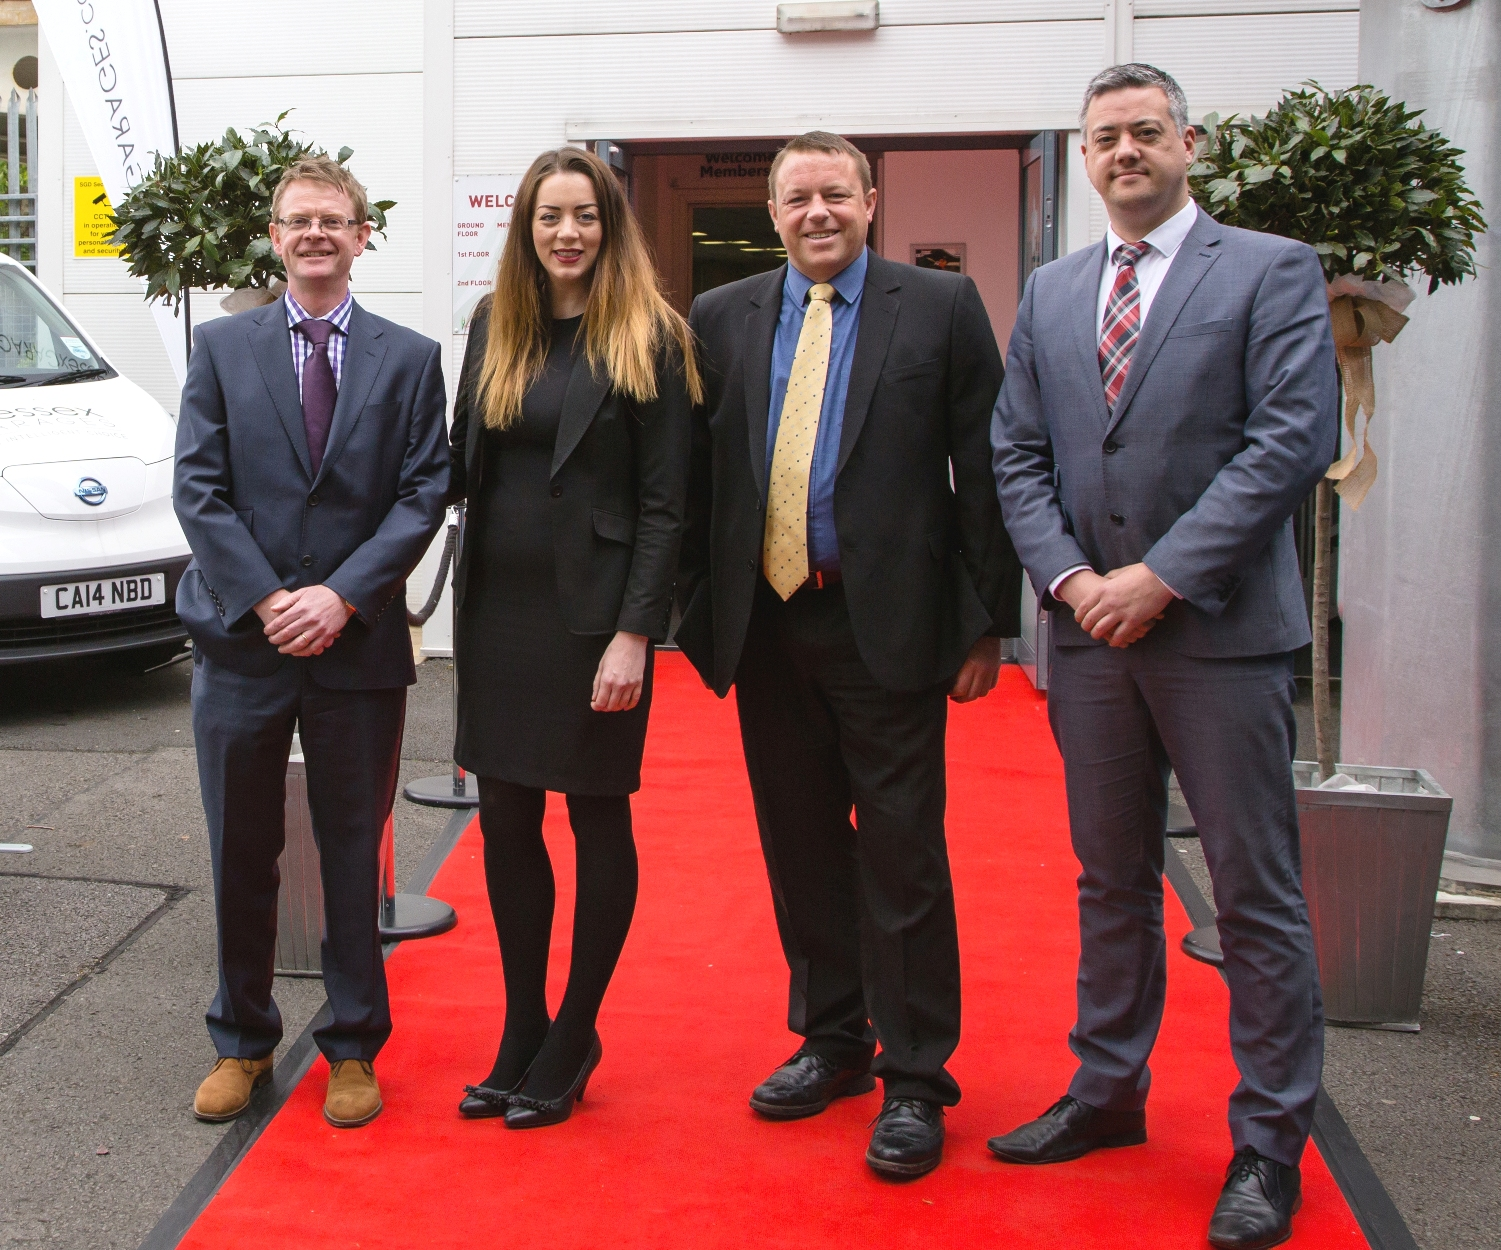 (From left to right) Group Fleet Manager at Wessex Garages, Andy Provis, Business Specialist Dealers at Wessex Garages, Kate Hancock, Simon Richardson and Darren Wesson, who are all now members of the Institute of Directors (IOD).